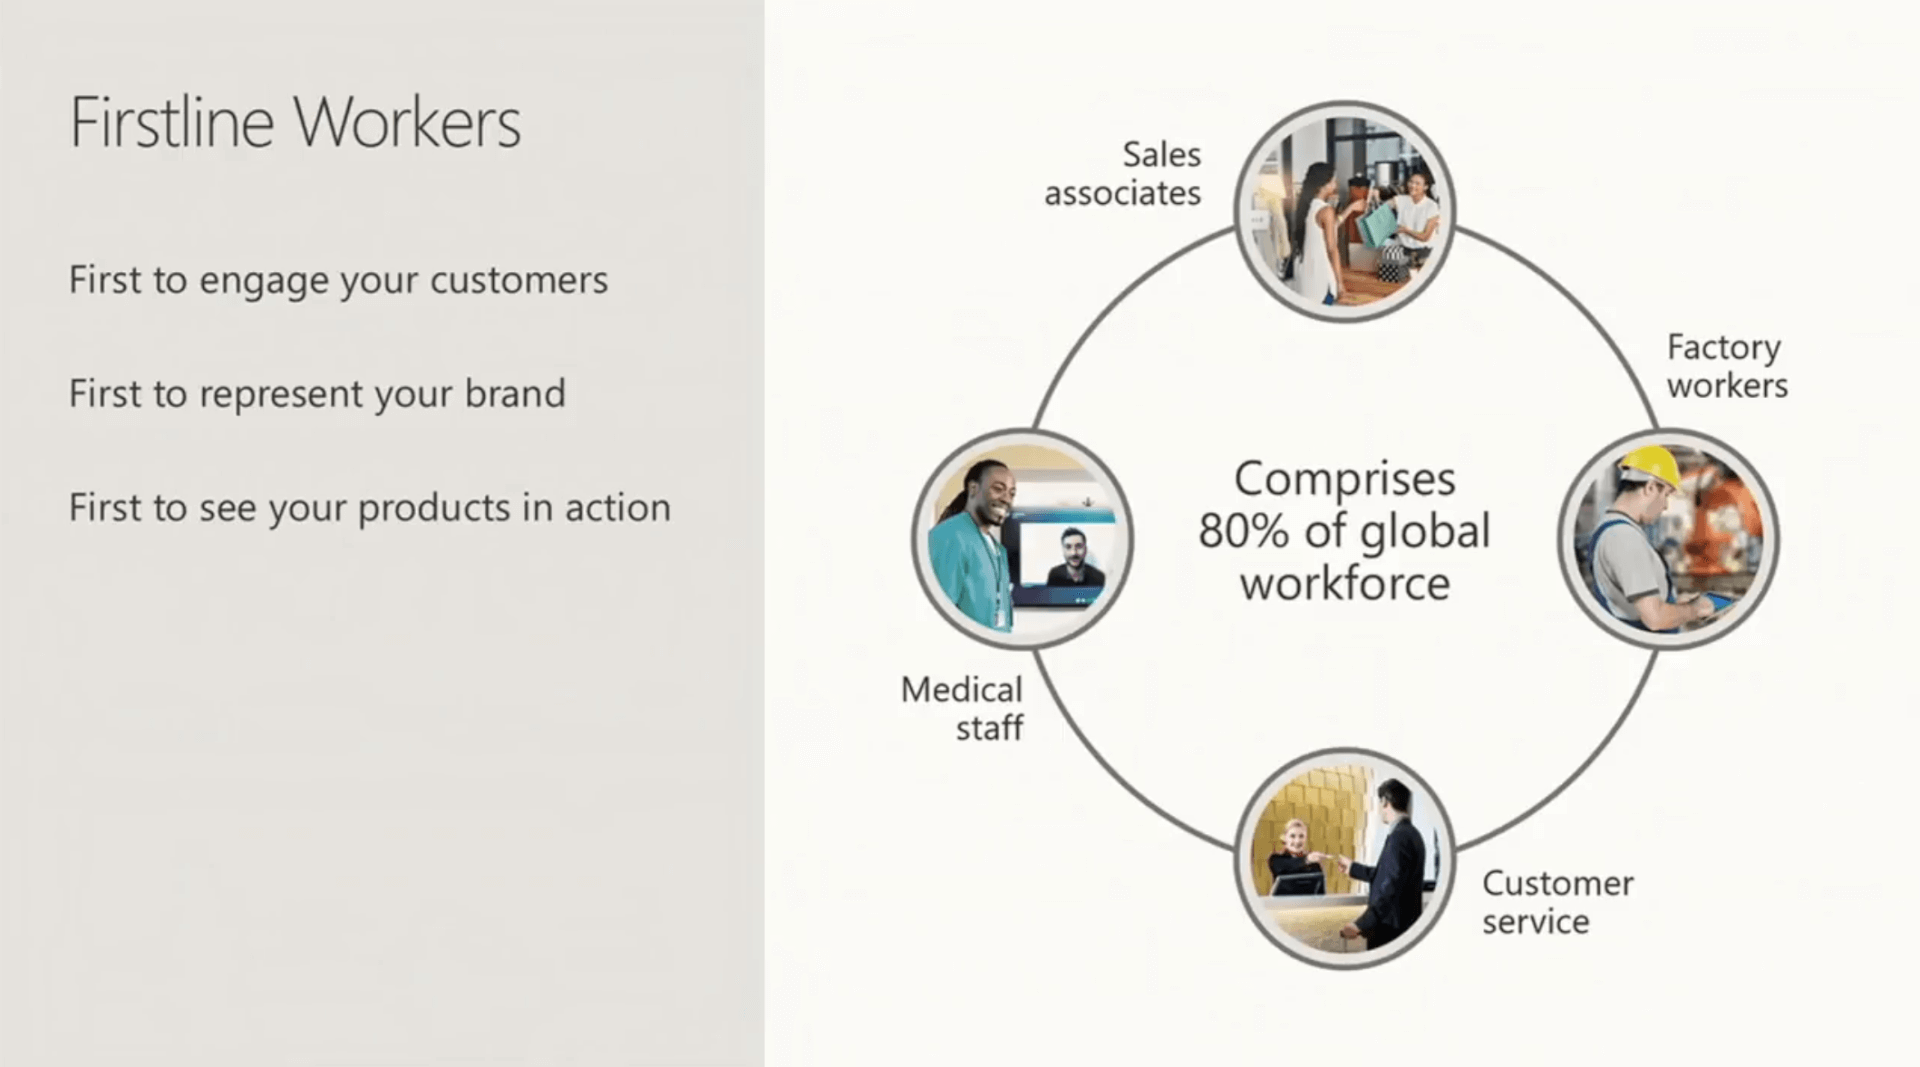 Texte de remplacement généré par une machine: Firstline Workers First to engage your customers First to represent your brand First to see your products in action Sales associates Factory workers Medical staff Comprises 80% of global workforce Customer service